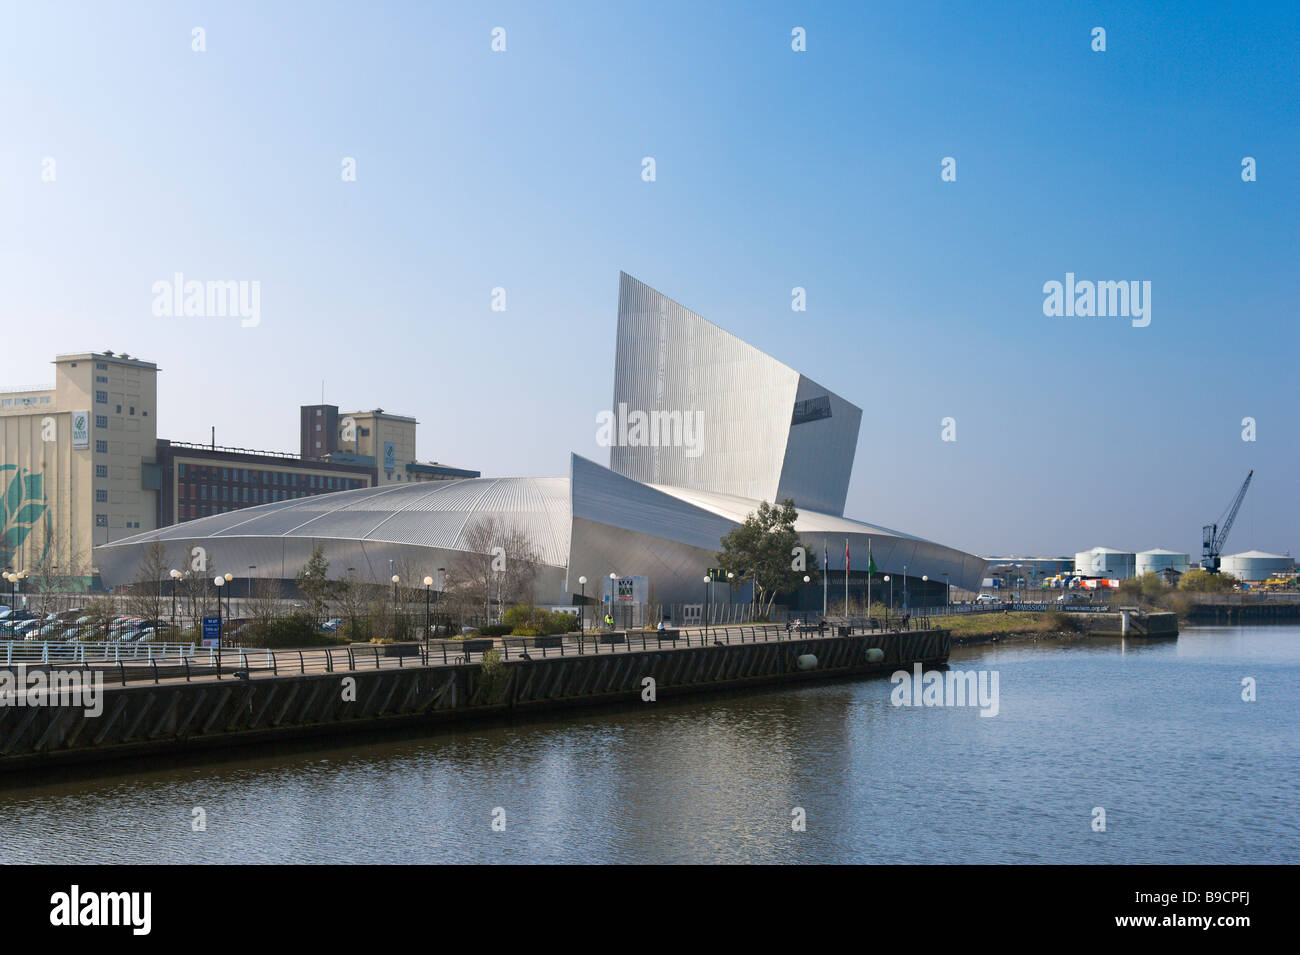 The Imperial War Museum North designed by the architect Daniel Libeskind, Salford Quays, Greater Manchester, England - Stock Image